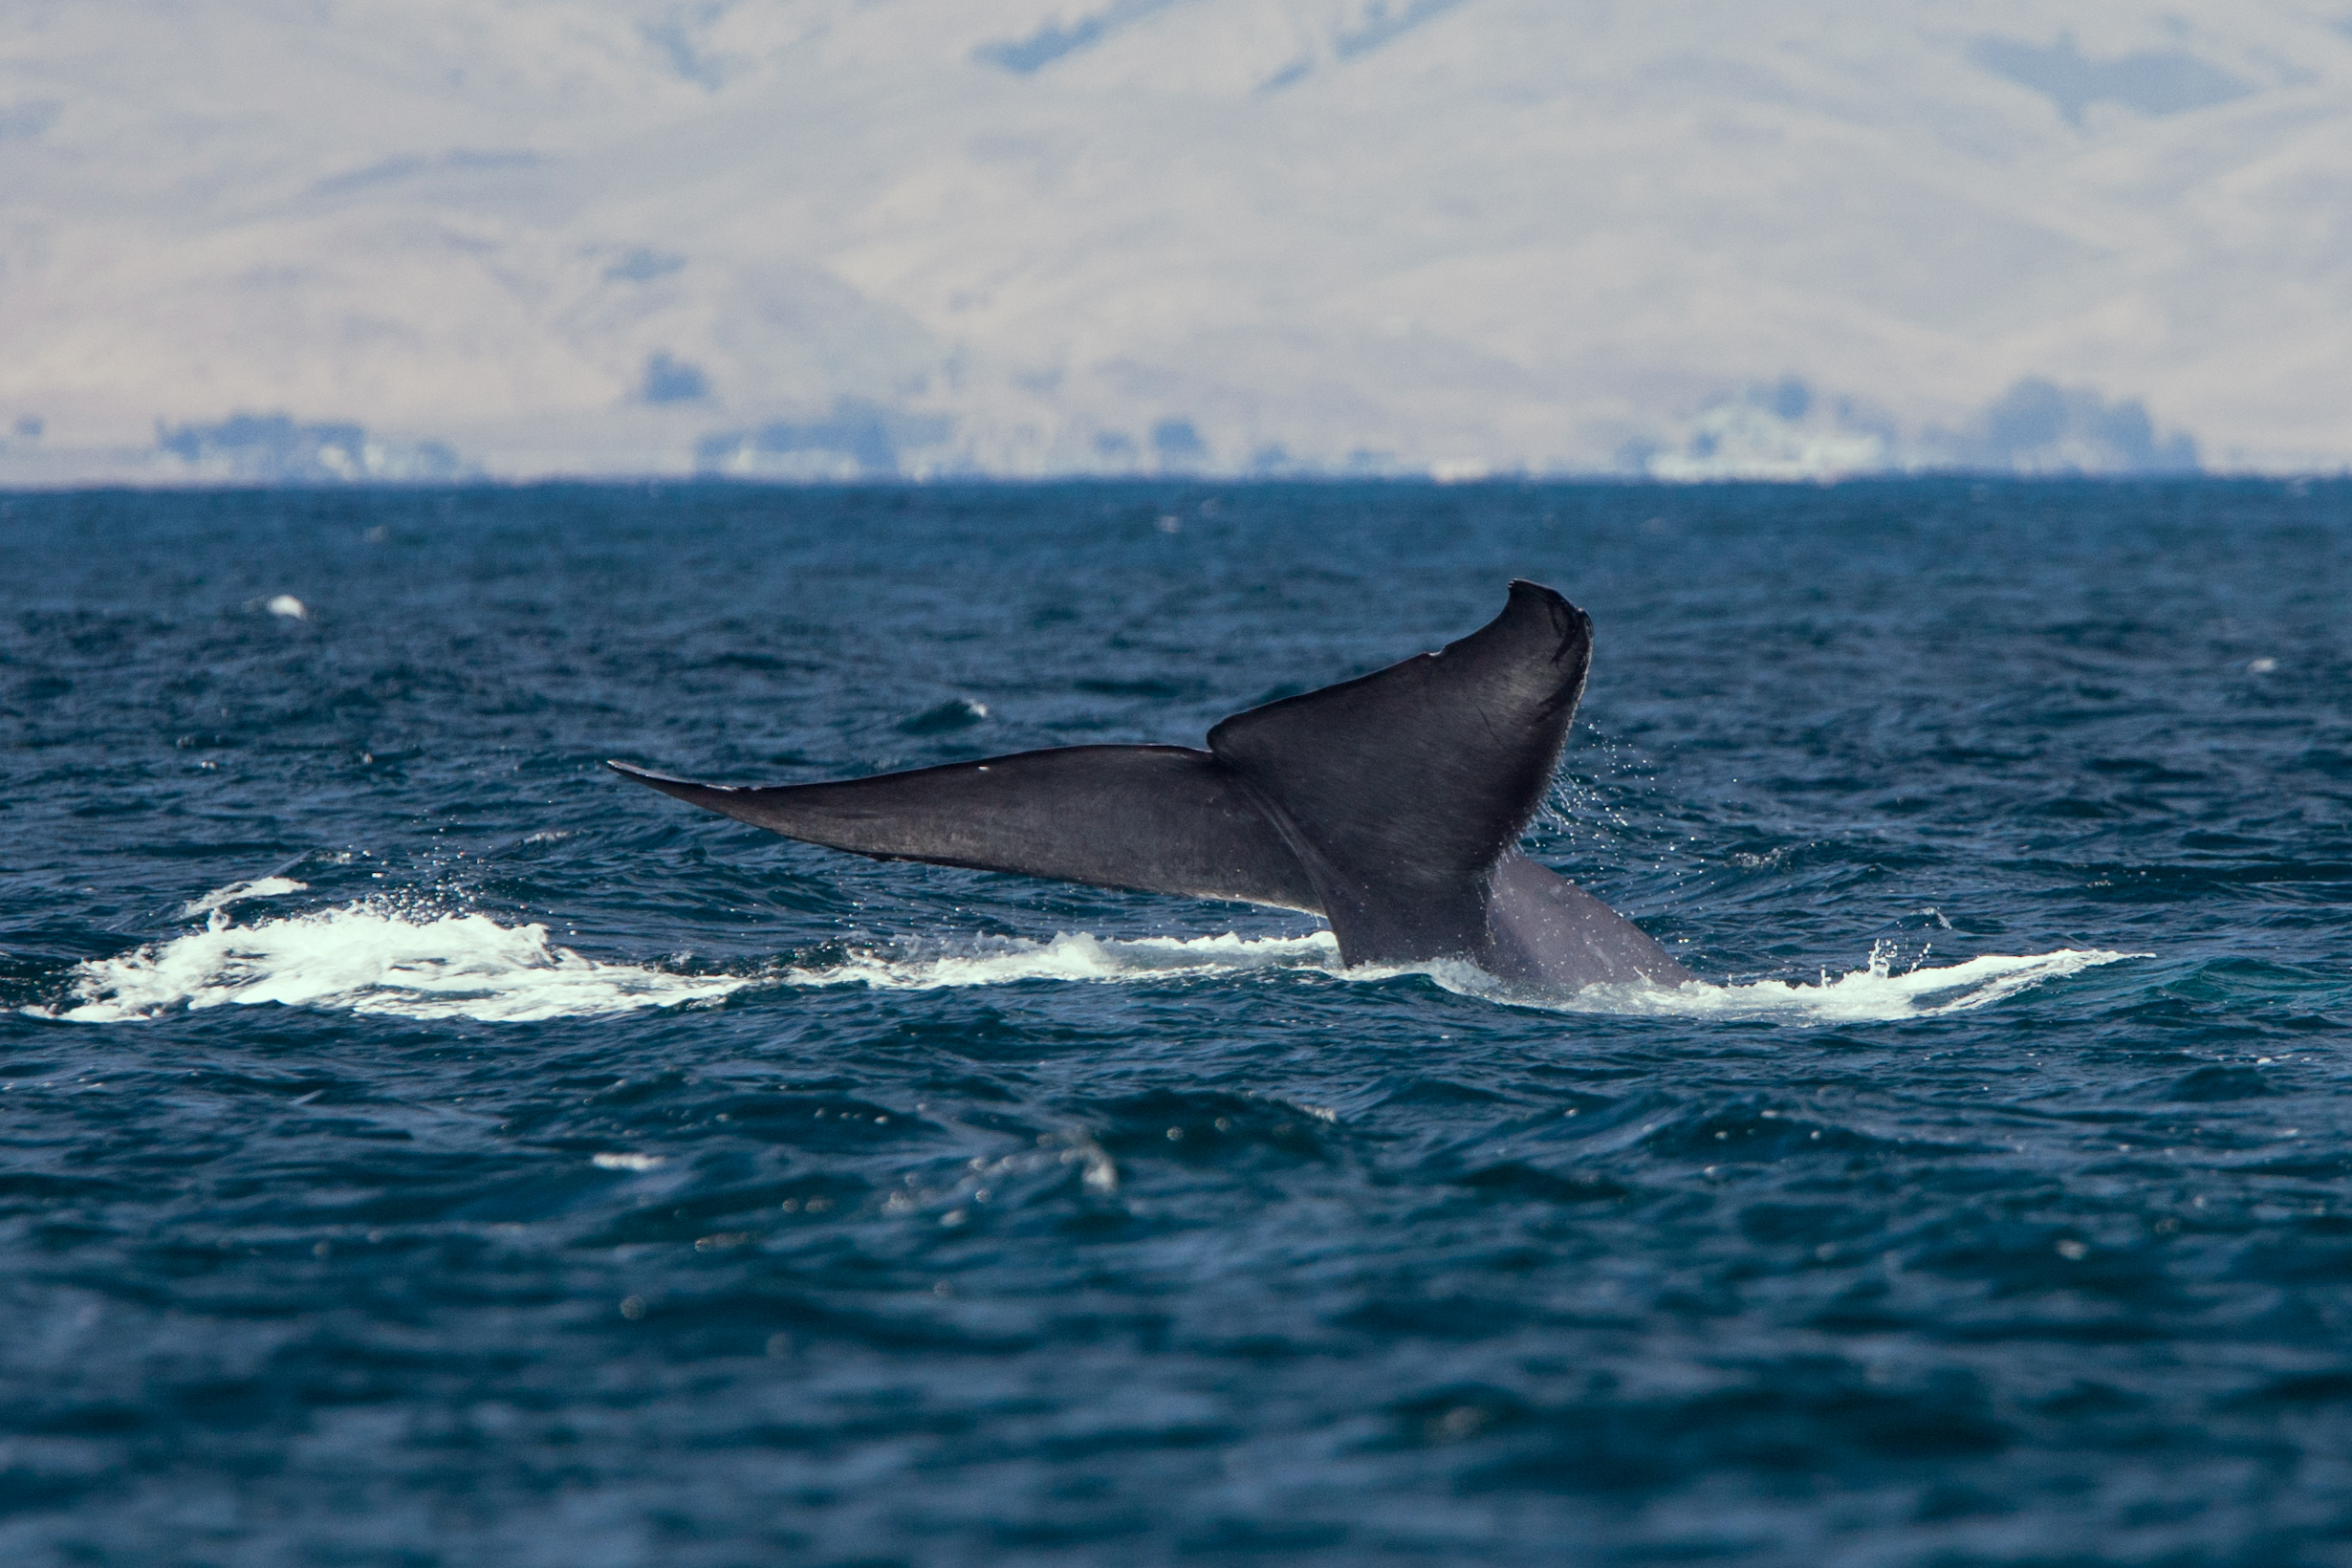 Featured image: NIWA Summer Series – The Sounds of Whales